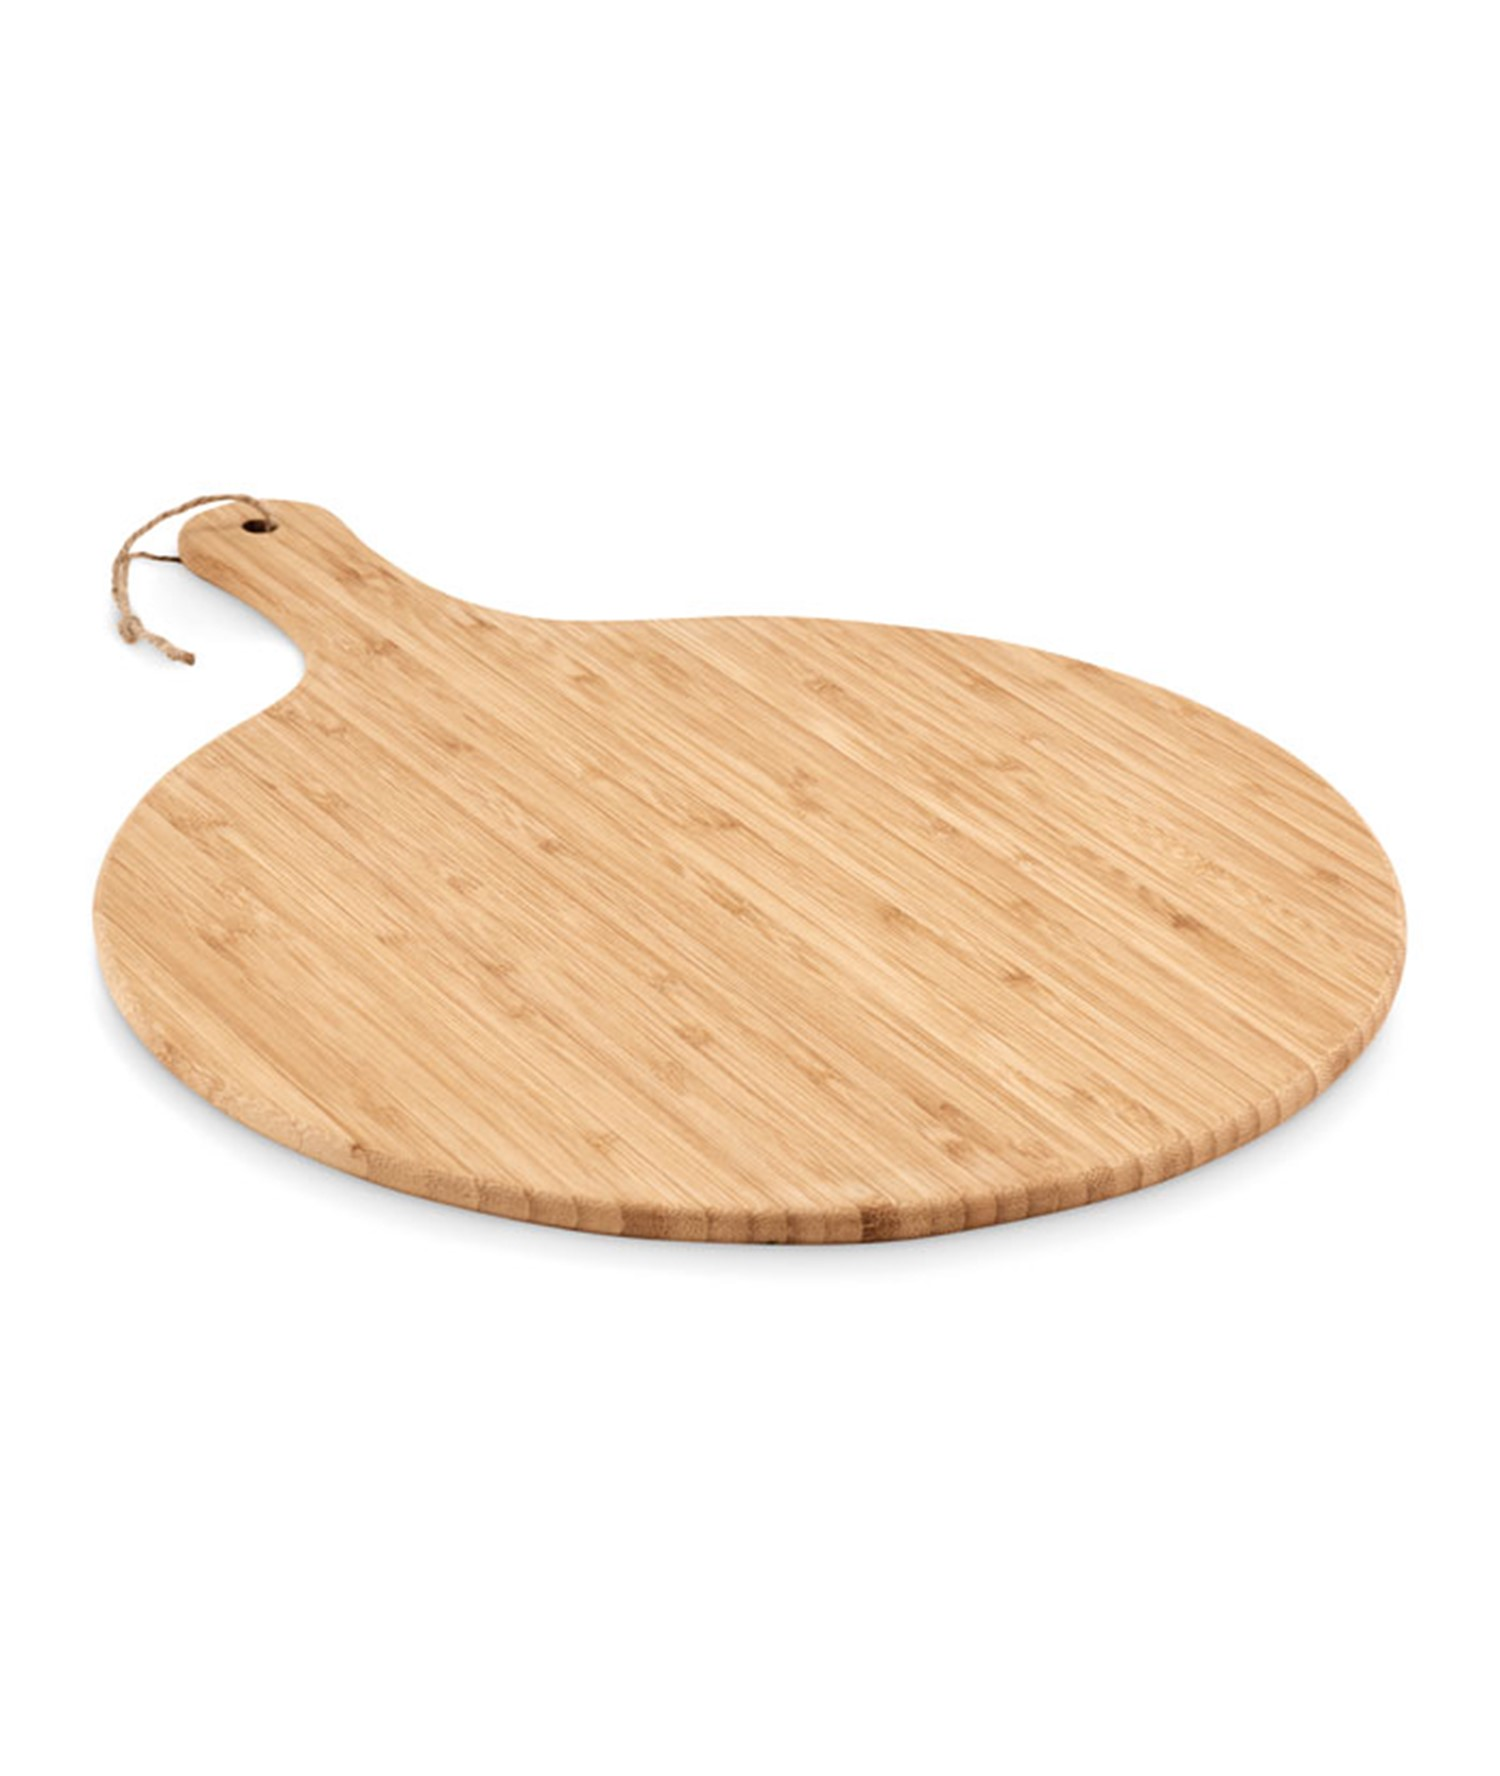 SERVE - CUTTING BOARD 31CM